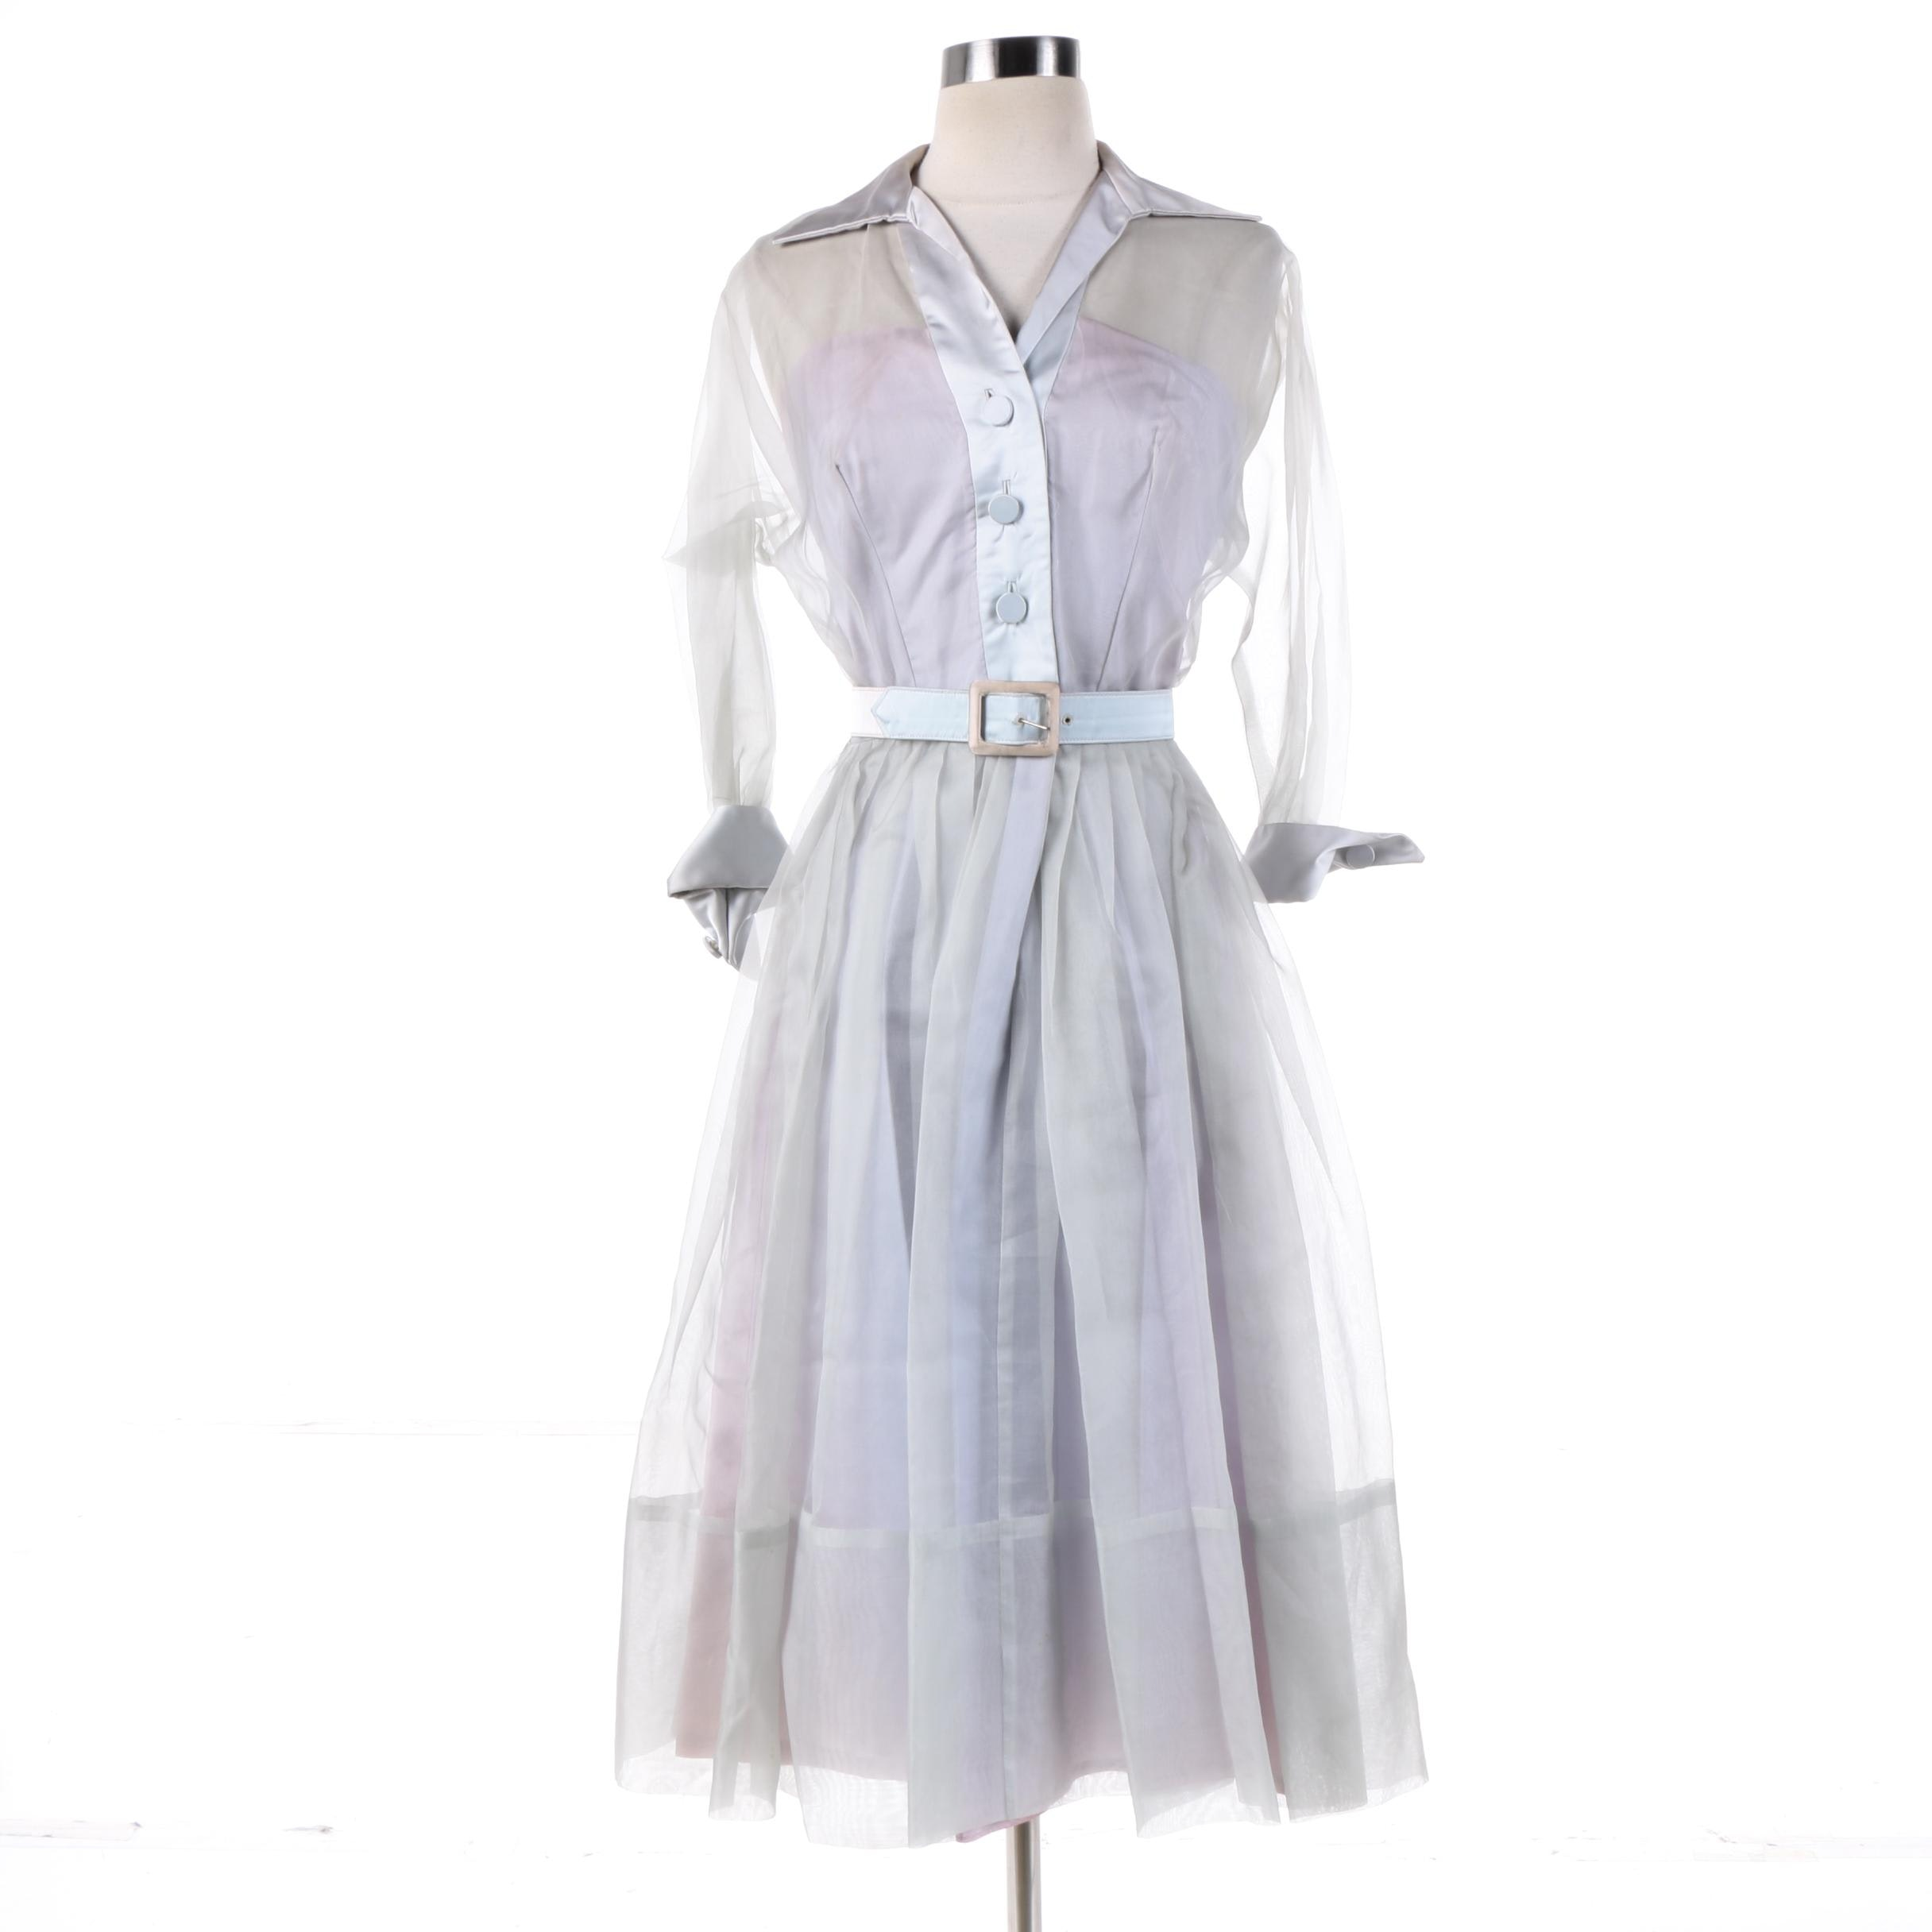 Circa 1950s Vintage Fit N' Flare Shirtwaist Dress